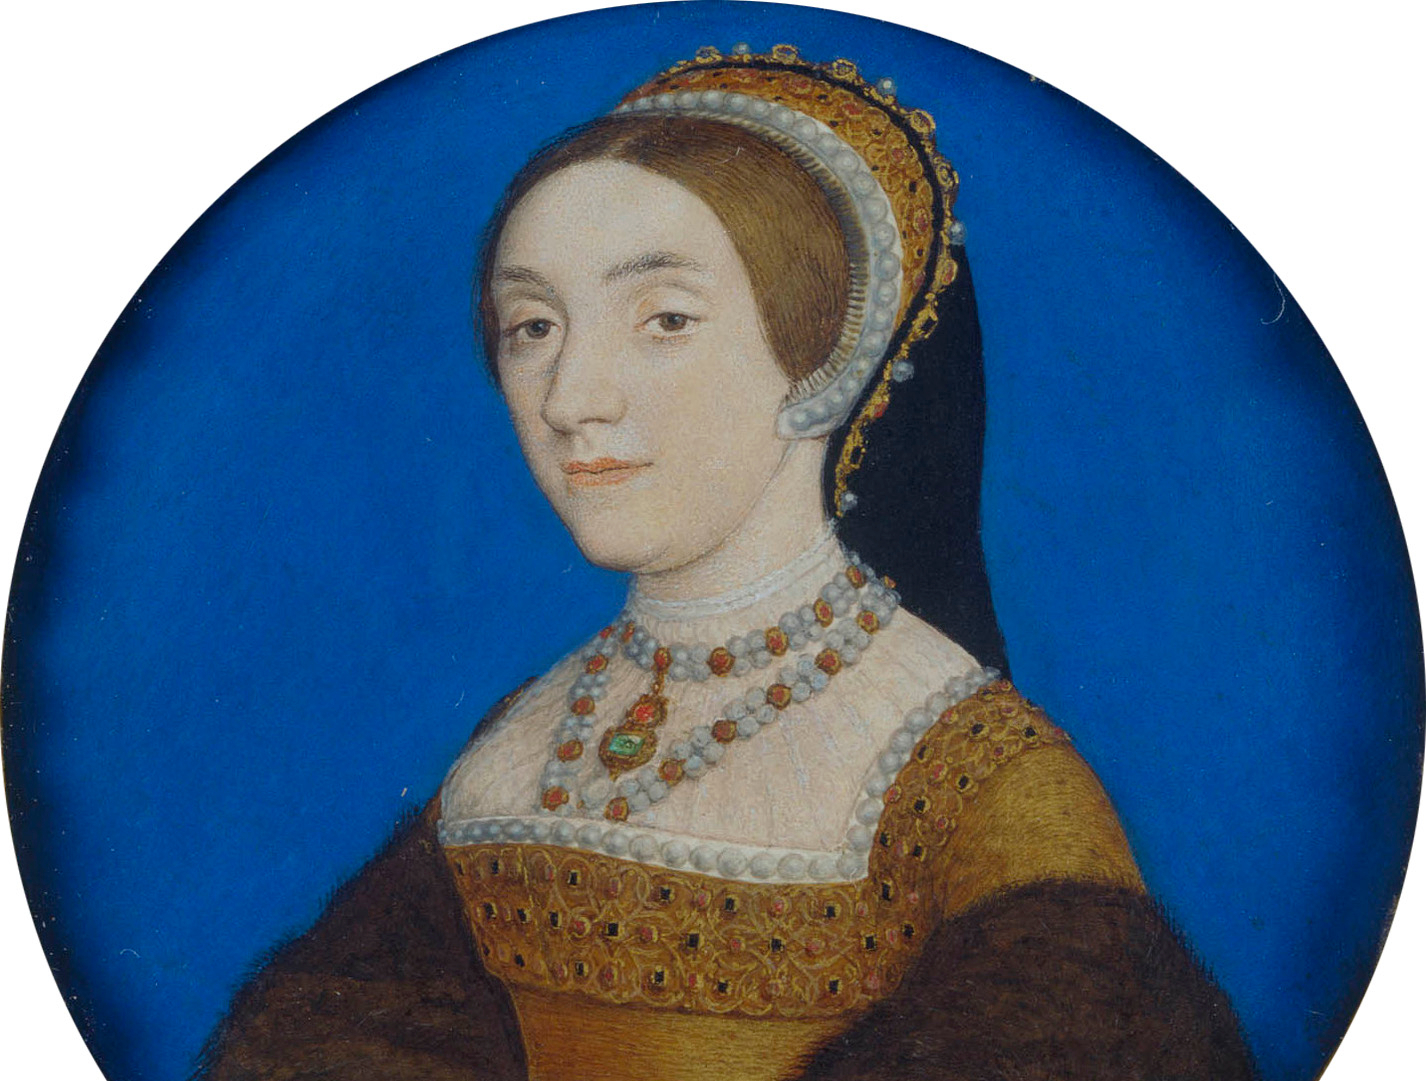 Catherine Howard Facts